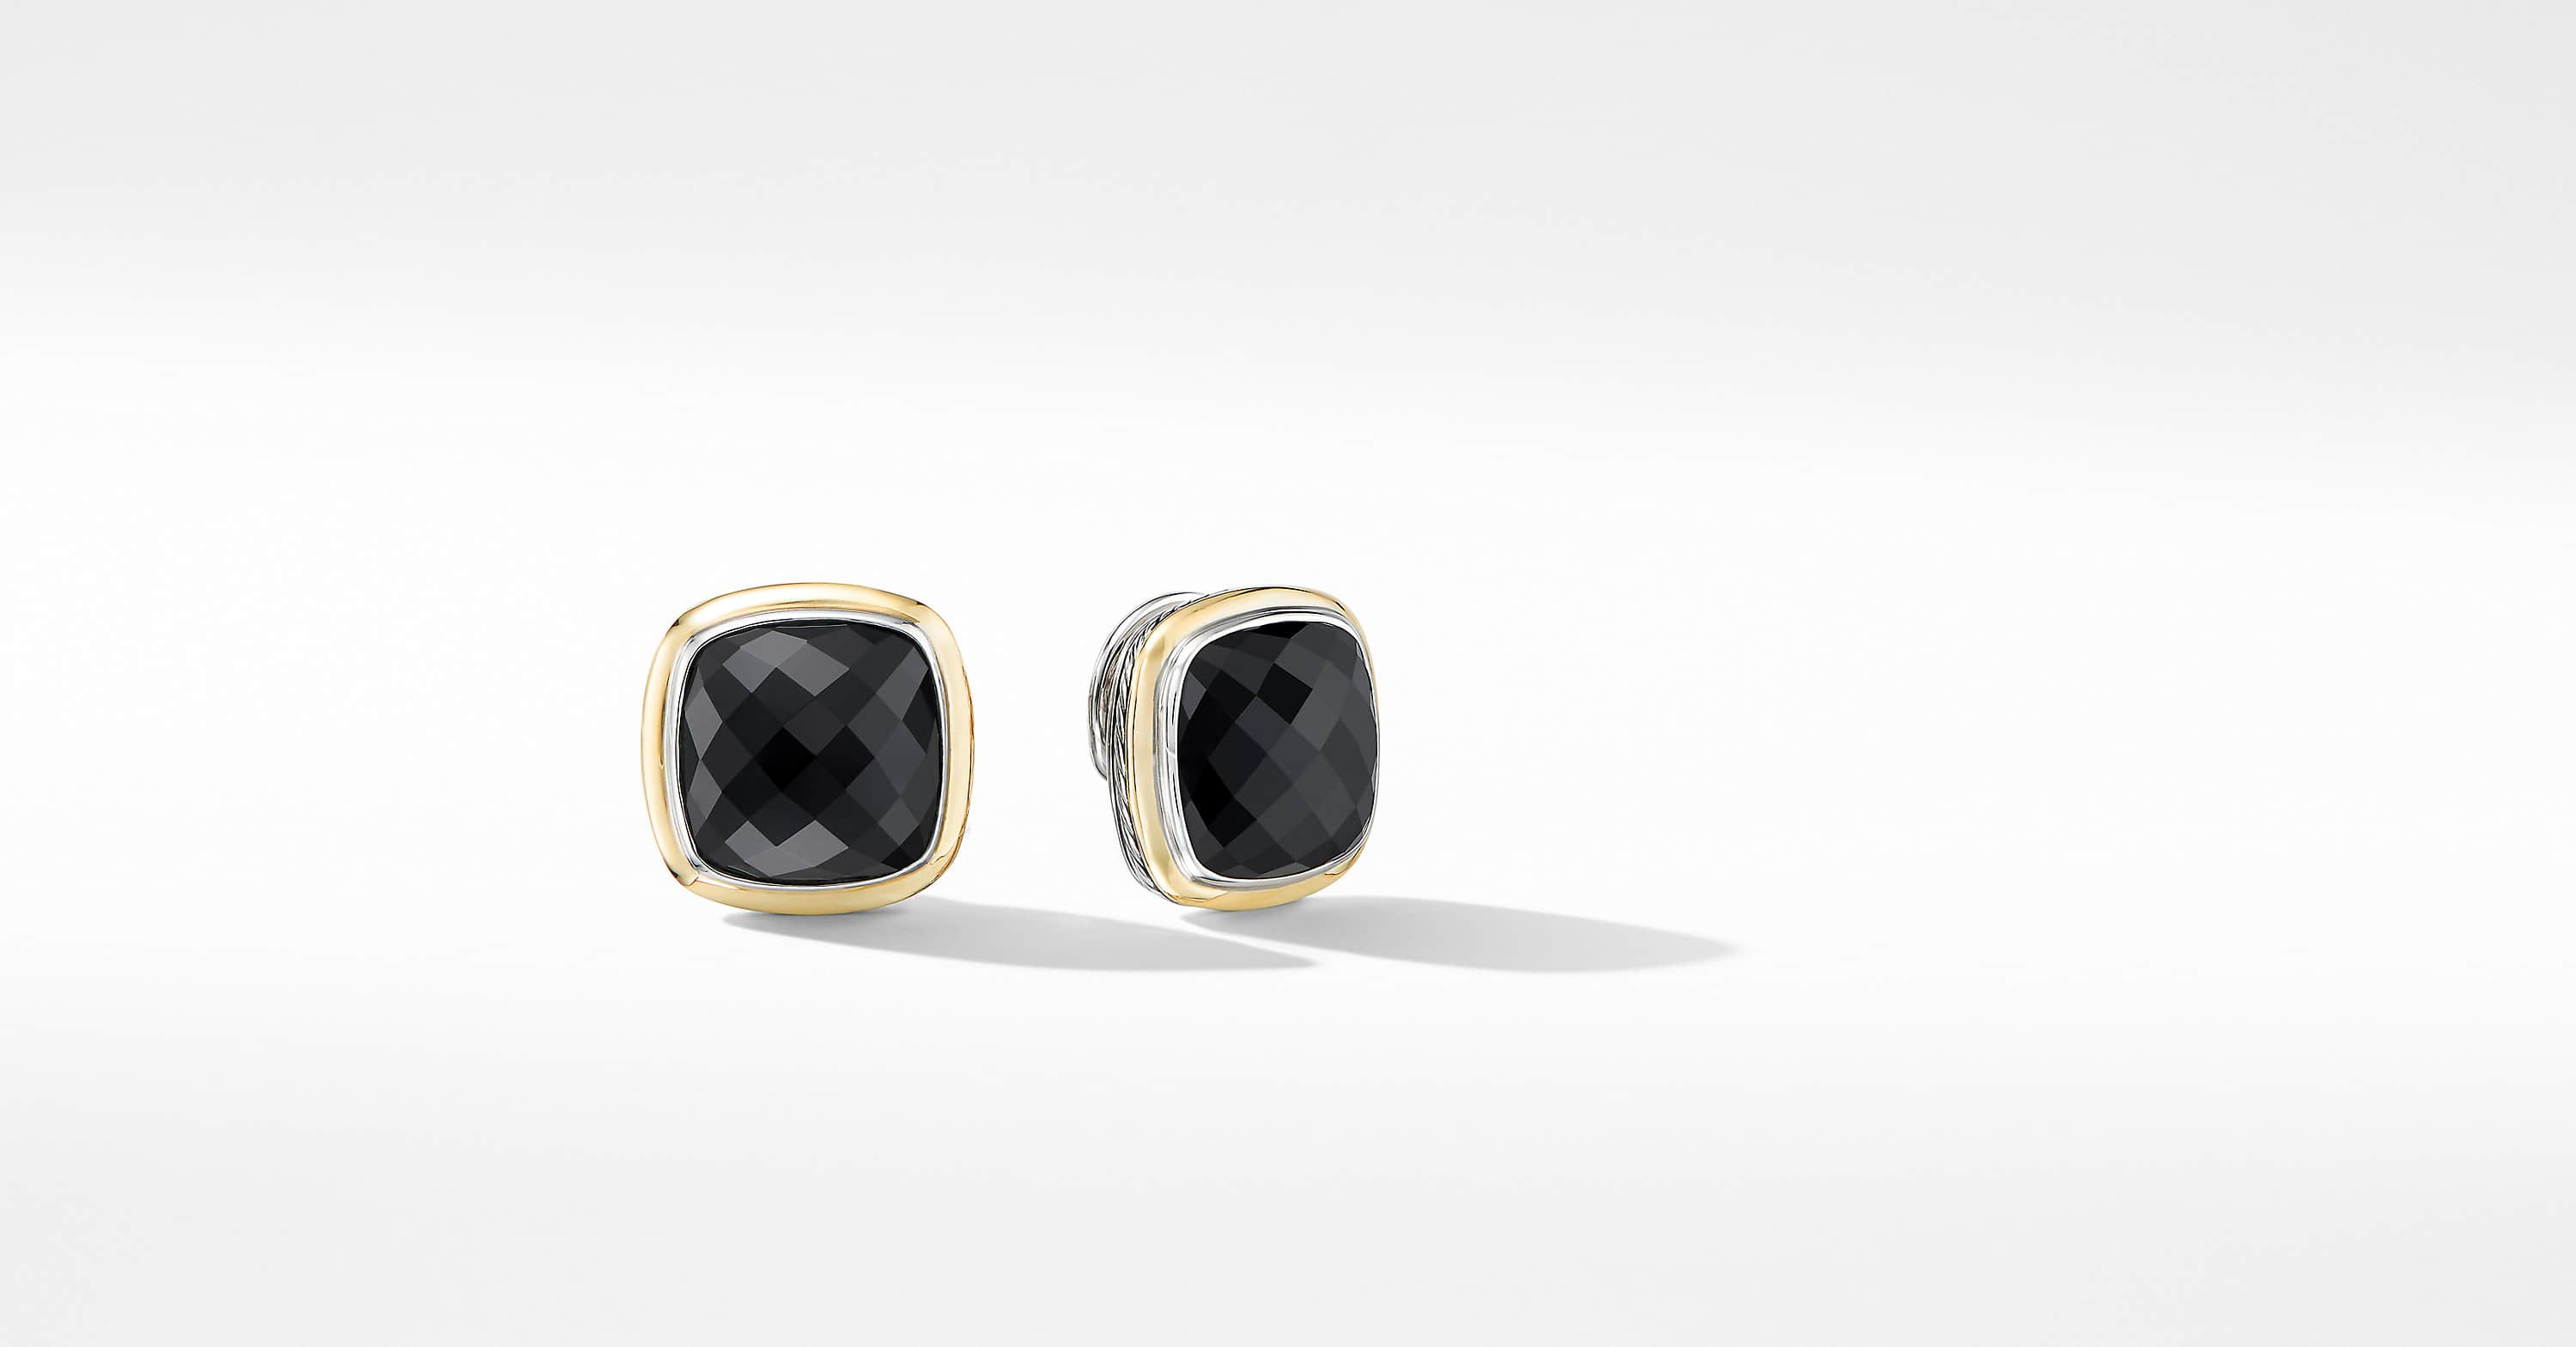 Albion Stud Earrings with 18K Yellow Gold